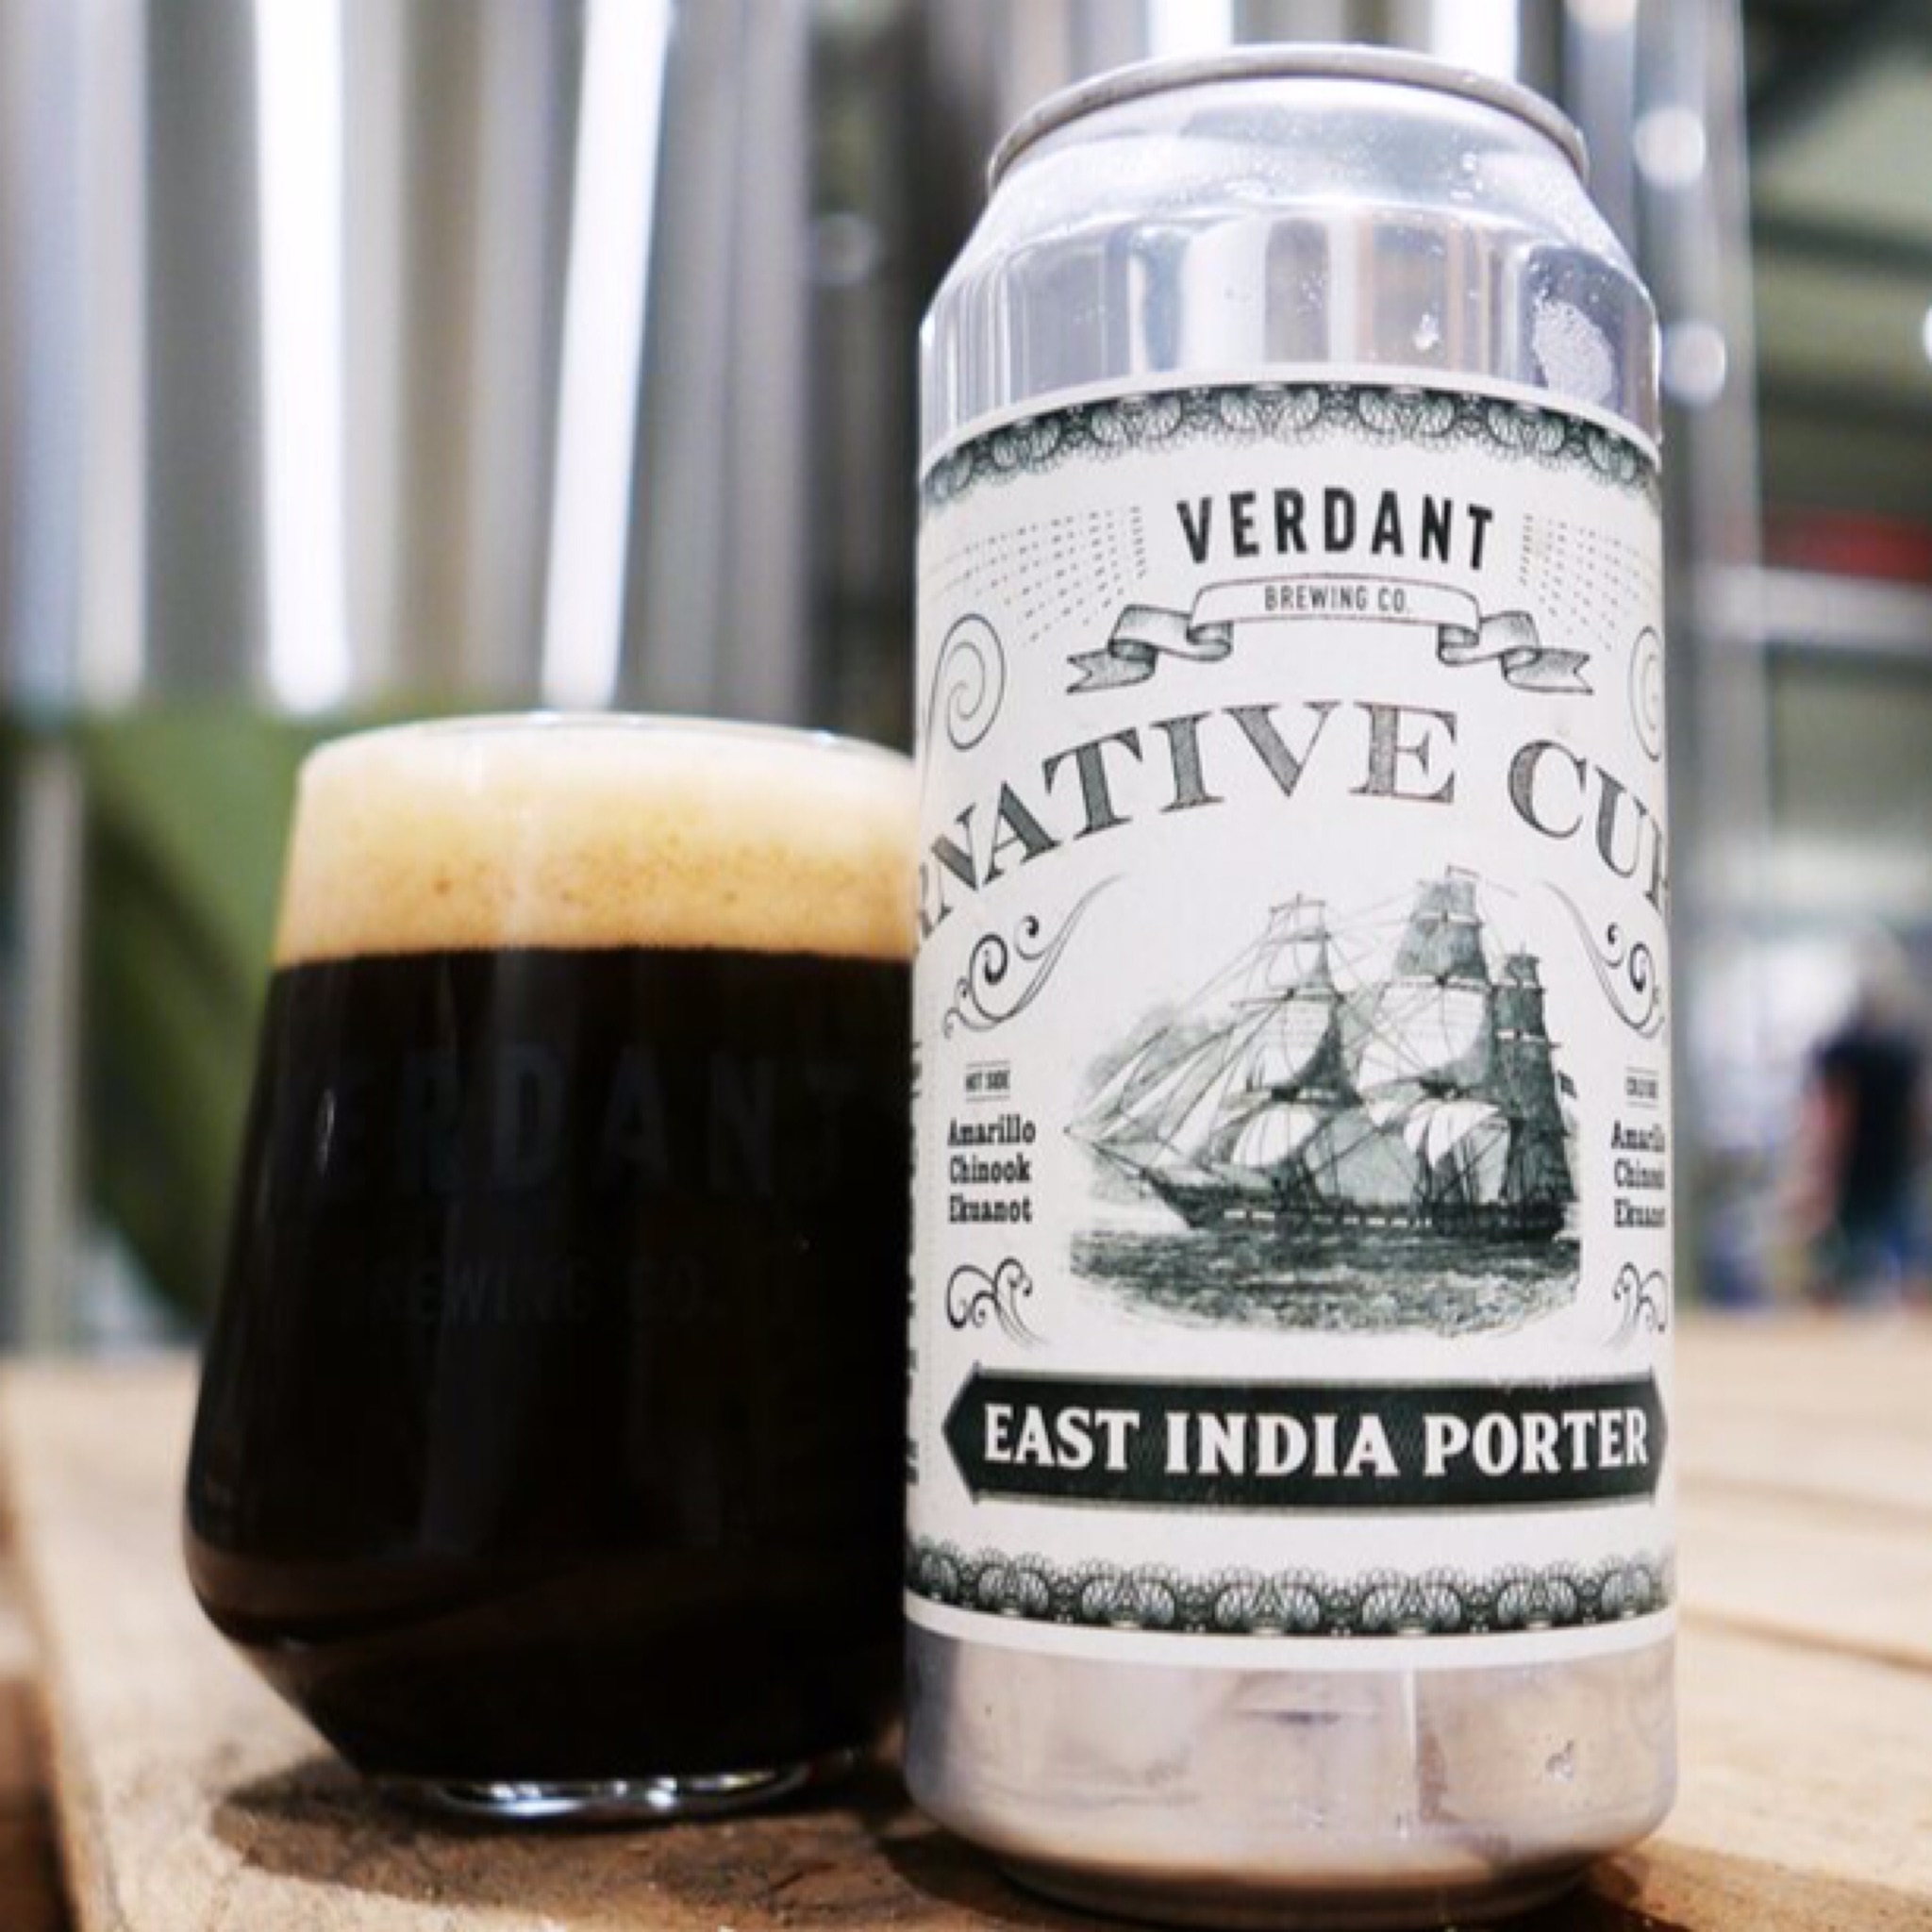 Alternative Currency East India Porter 5.8% 440ml Verdant Brewing Co